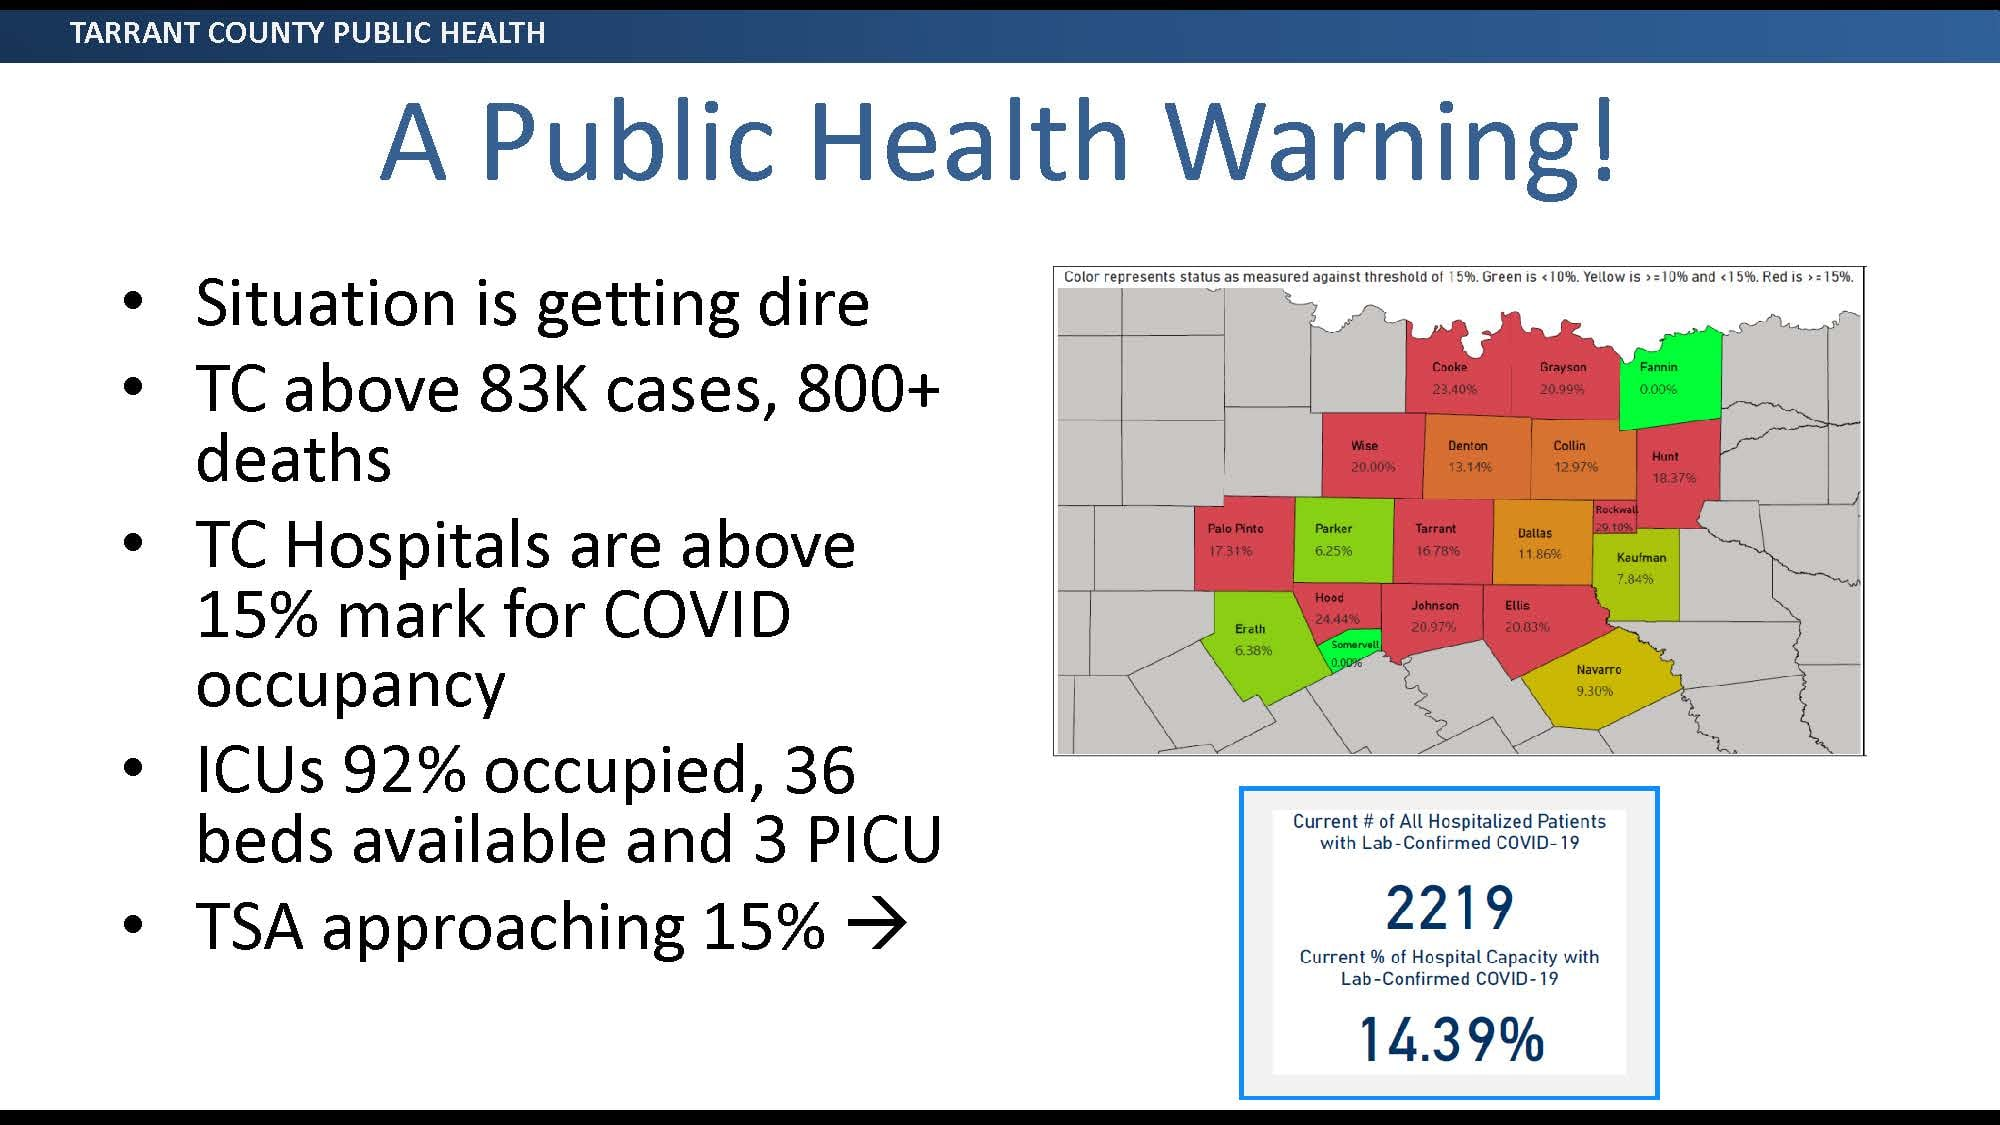 Tarrant County Public Health Warning